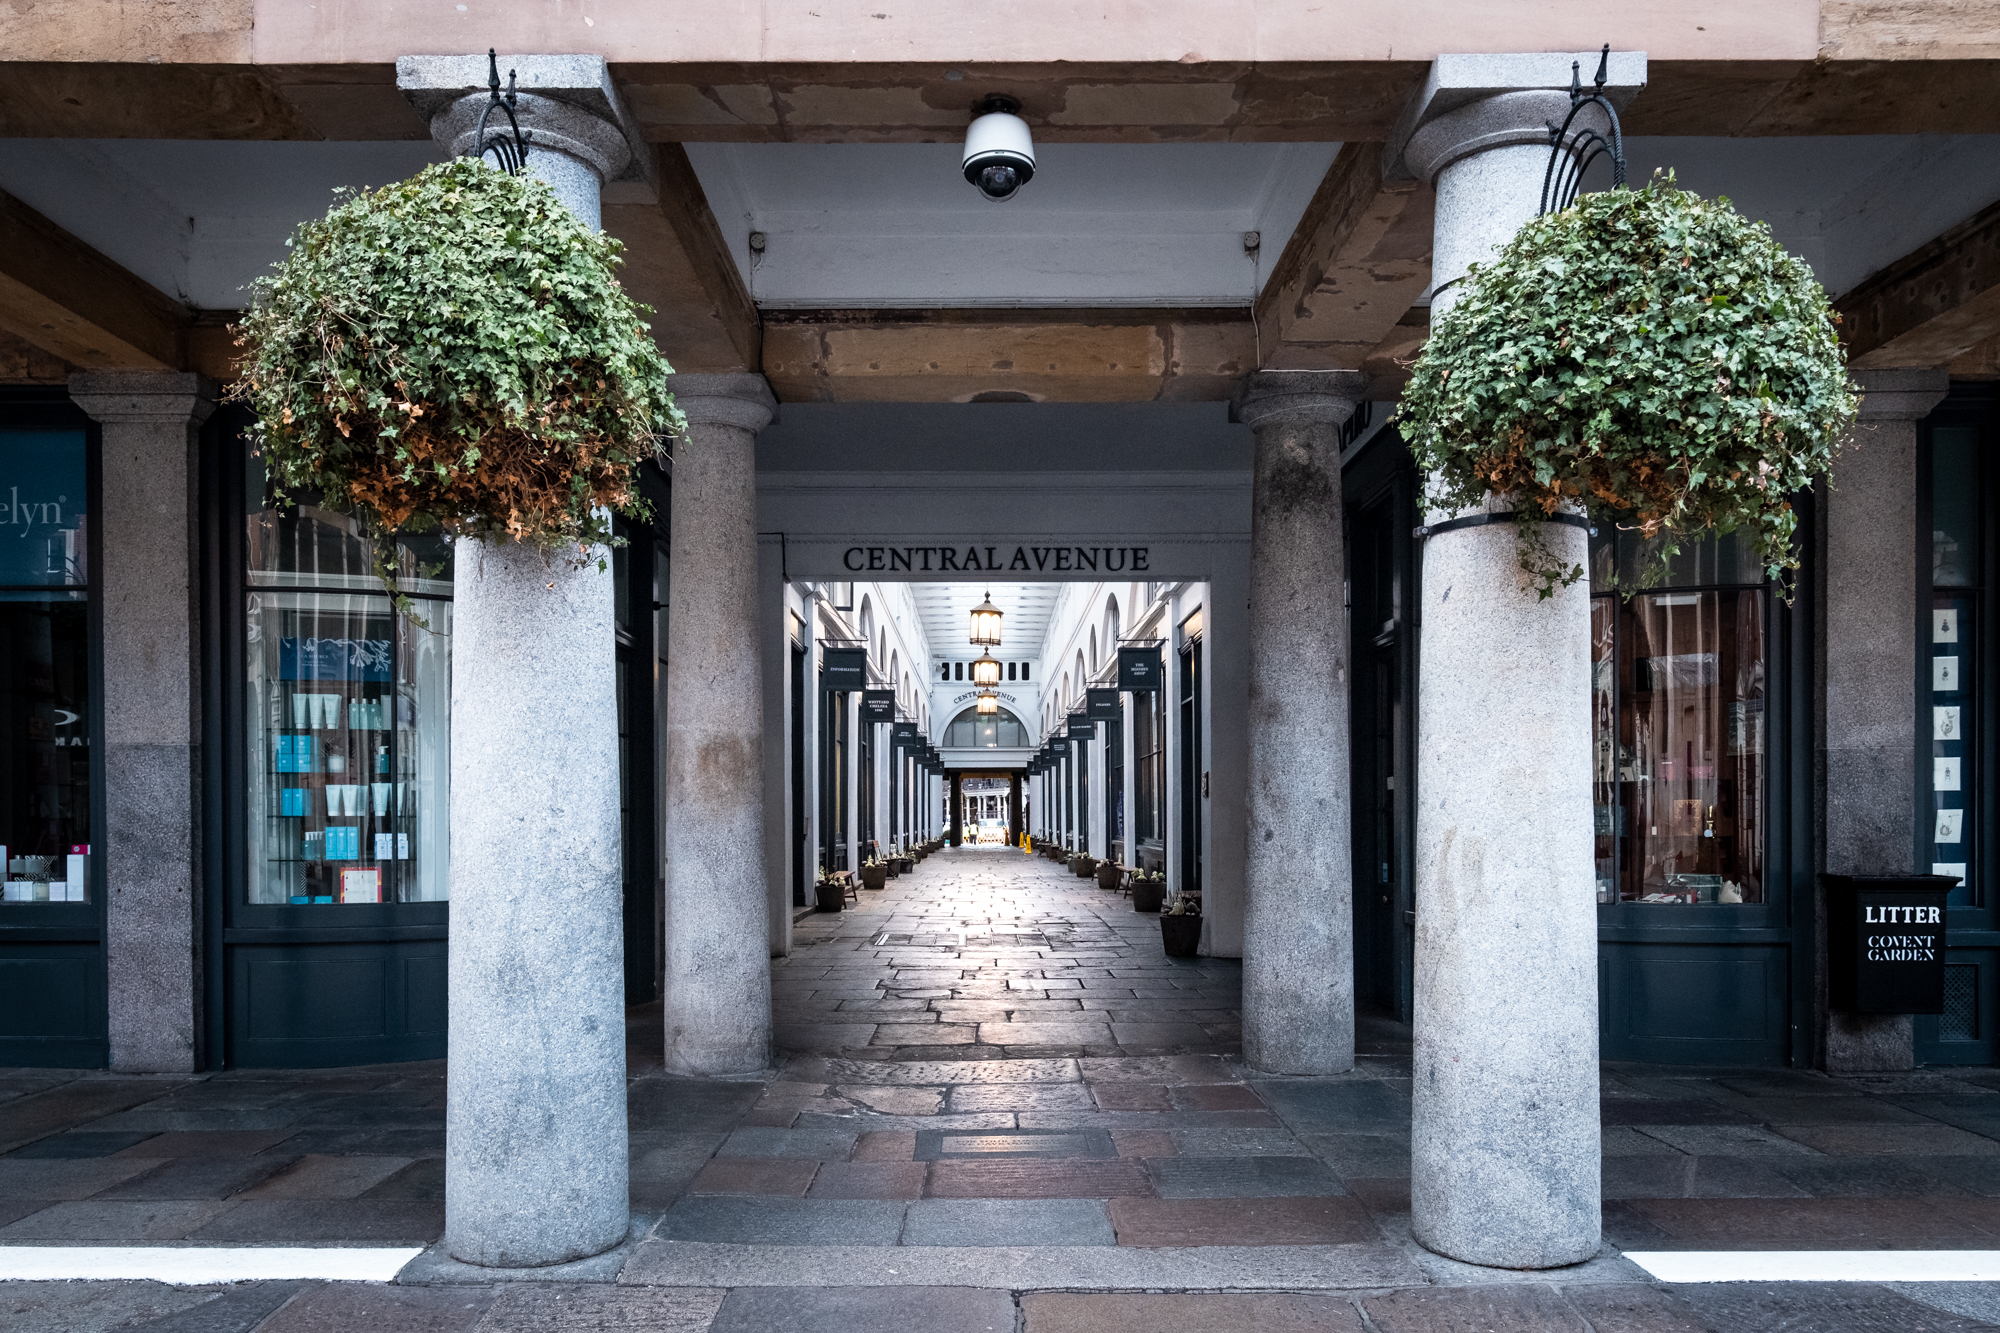 A photo of The Market Building walkway, Covent Garden, London taken by Trevor Sherwin